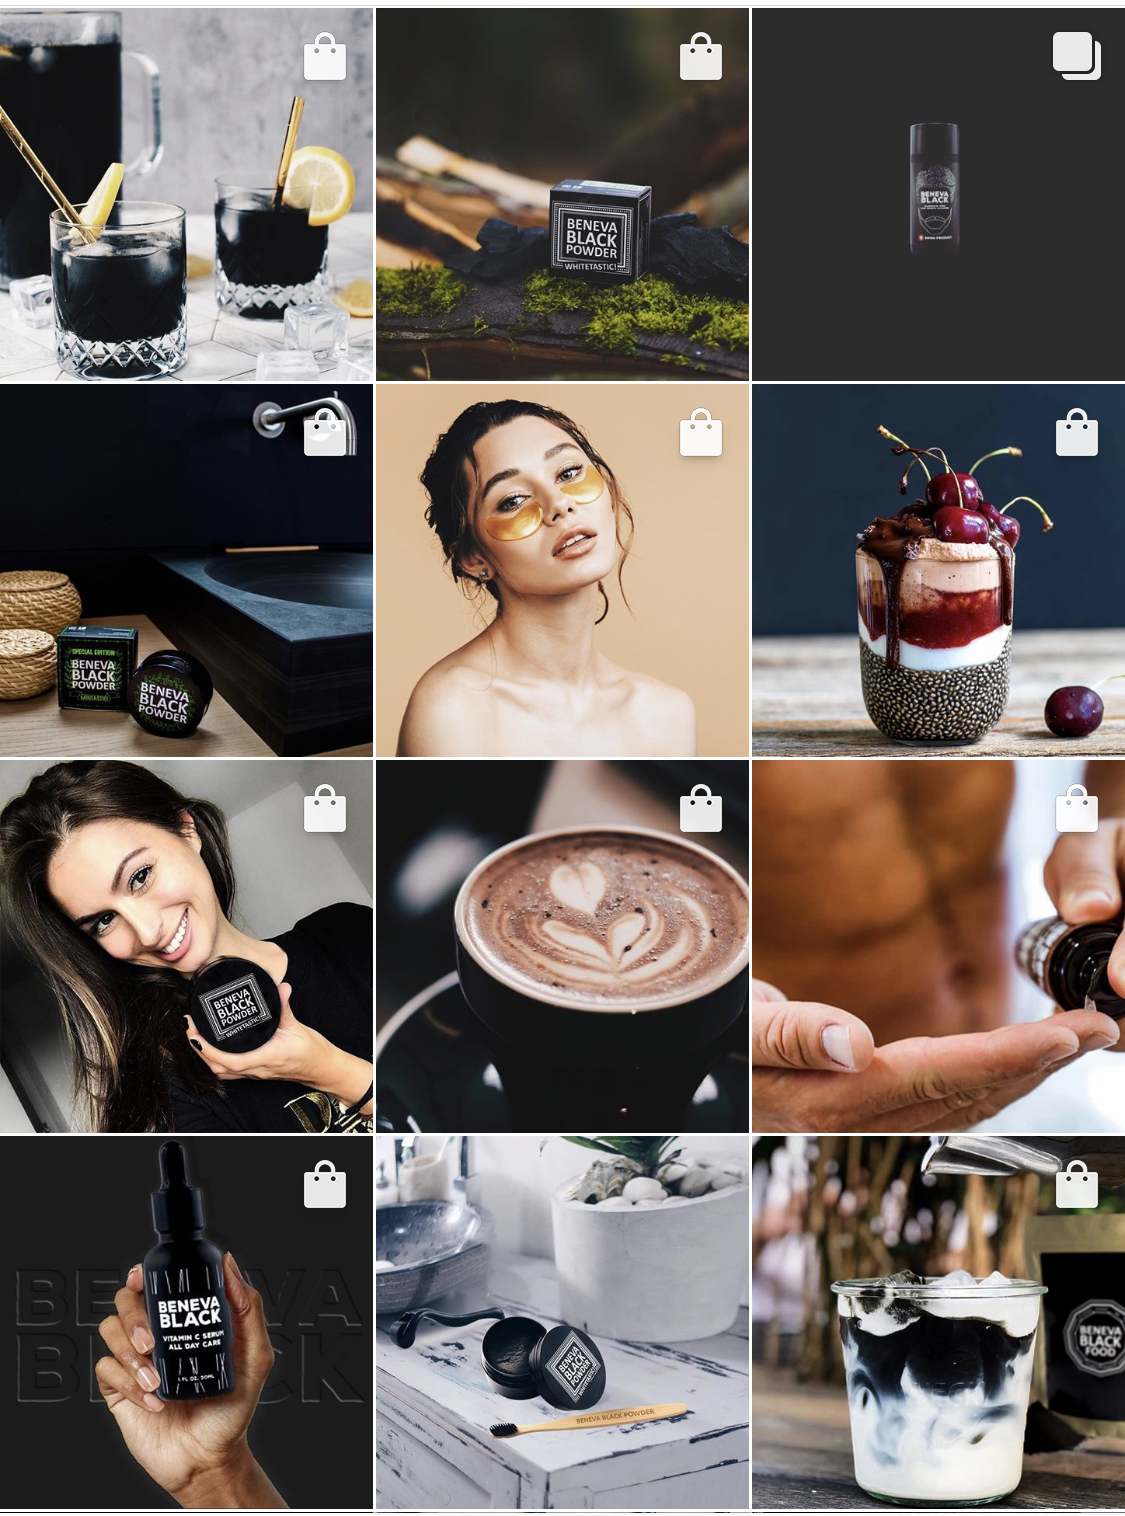 5 Expert Tips For Curating Content for A Craveable Instagram Feed - www.craveablesocial.com 4.jpg